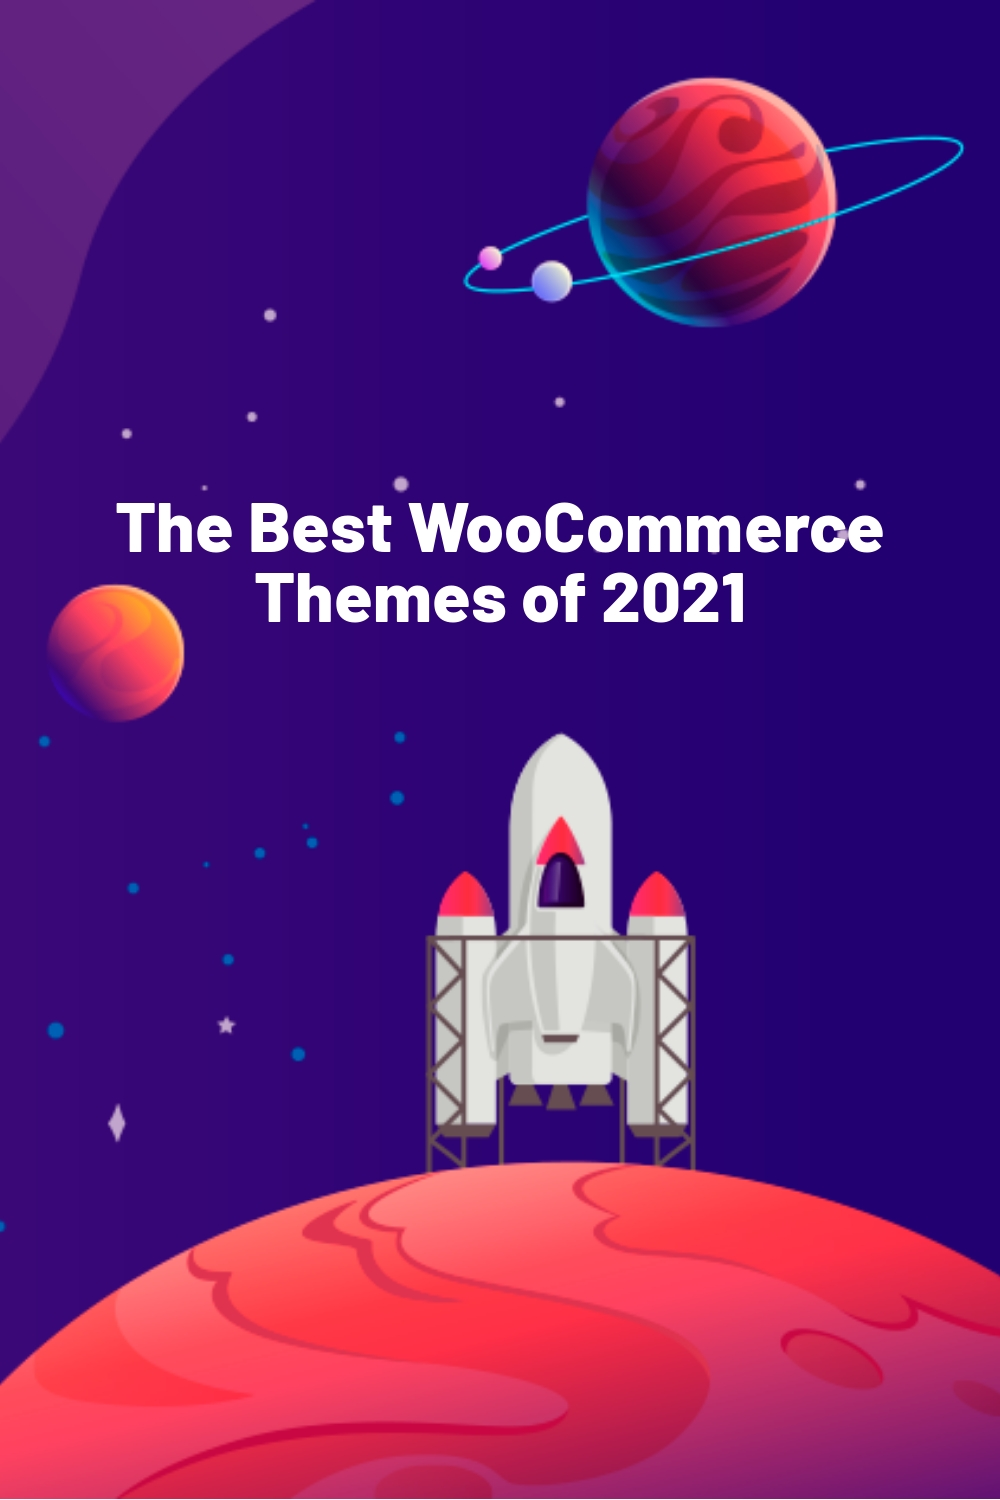 The Best WooCommerce Themes of 2021